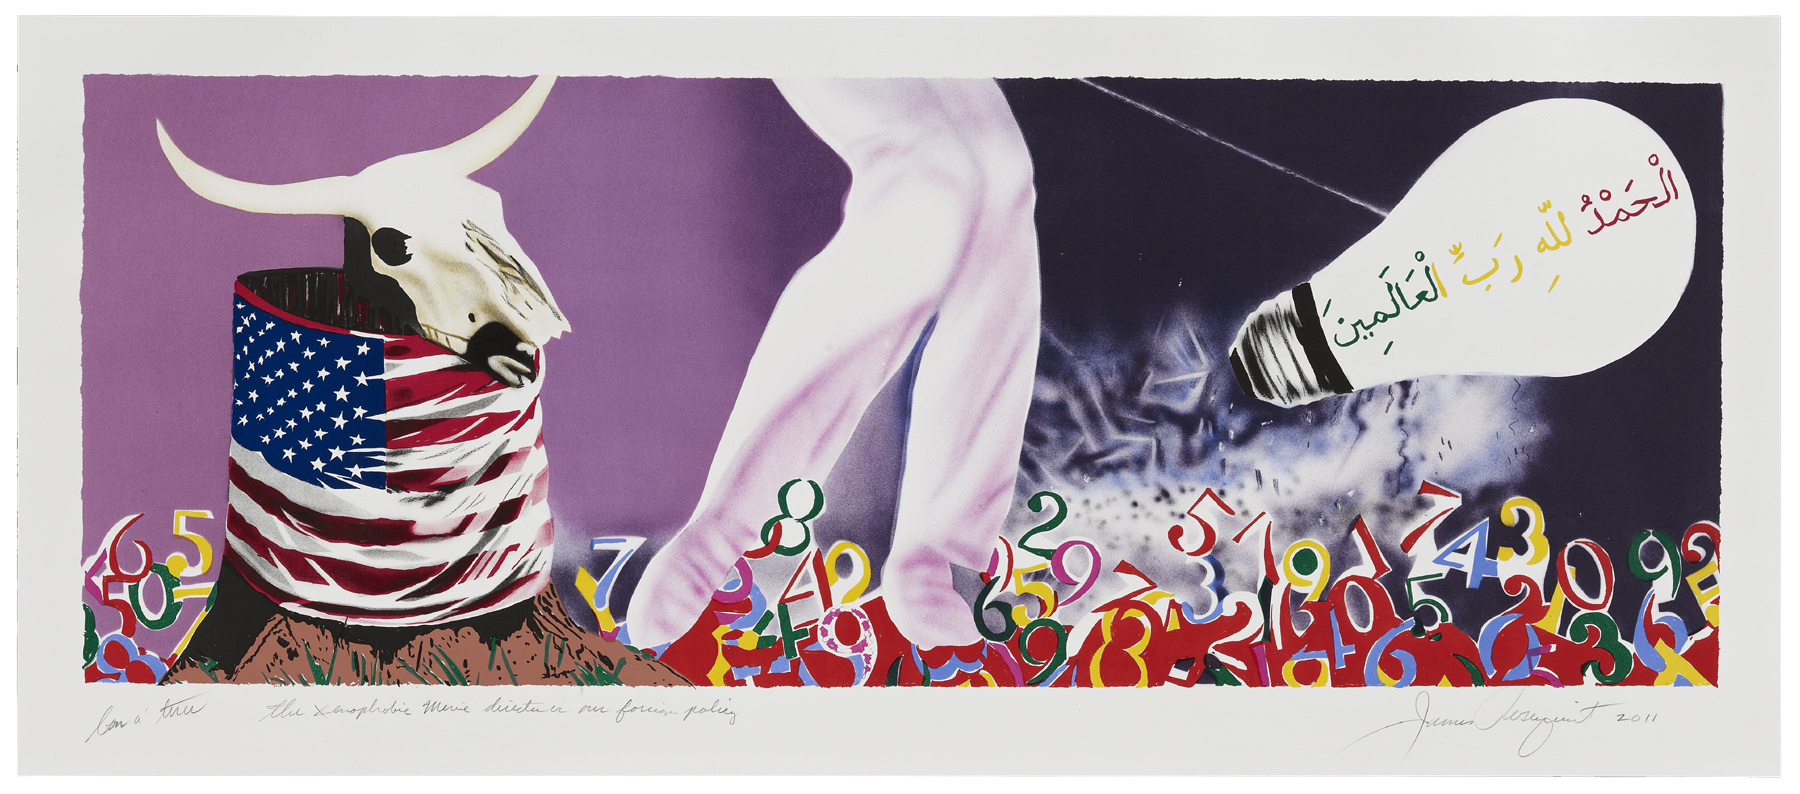 James Rosenquist, The Xenophobic Movie Director or Our Foreign Policy, 2011, 15 colour lithograph